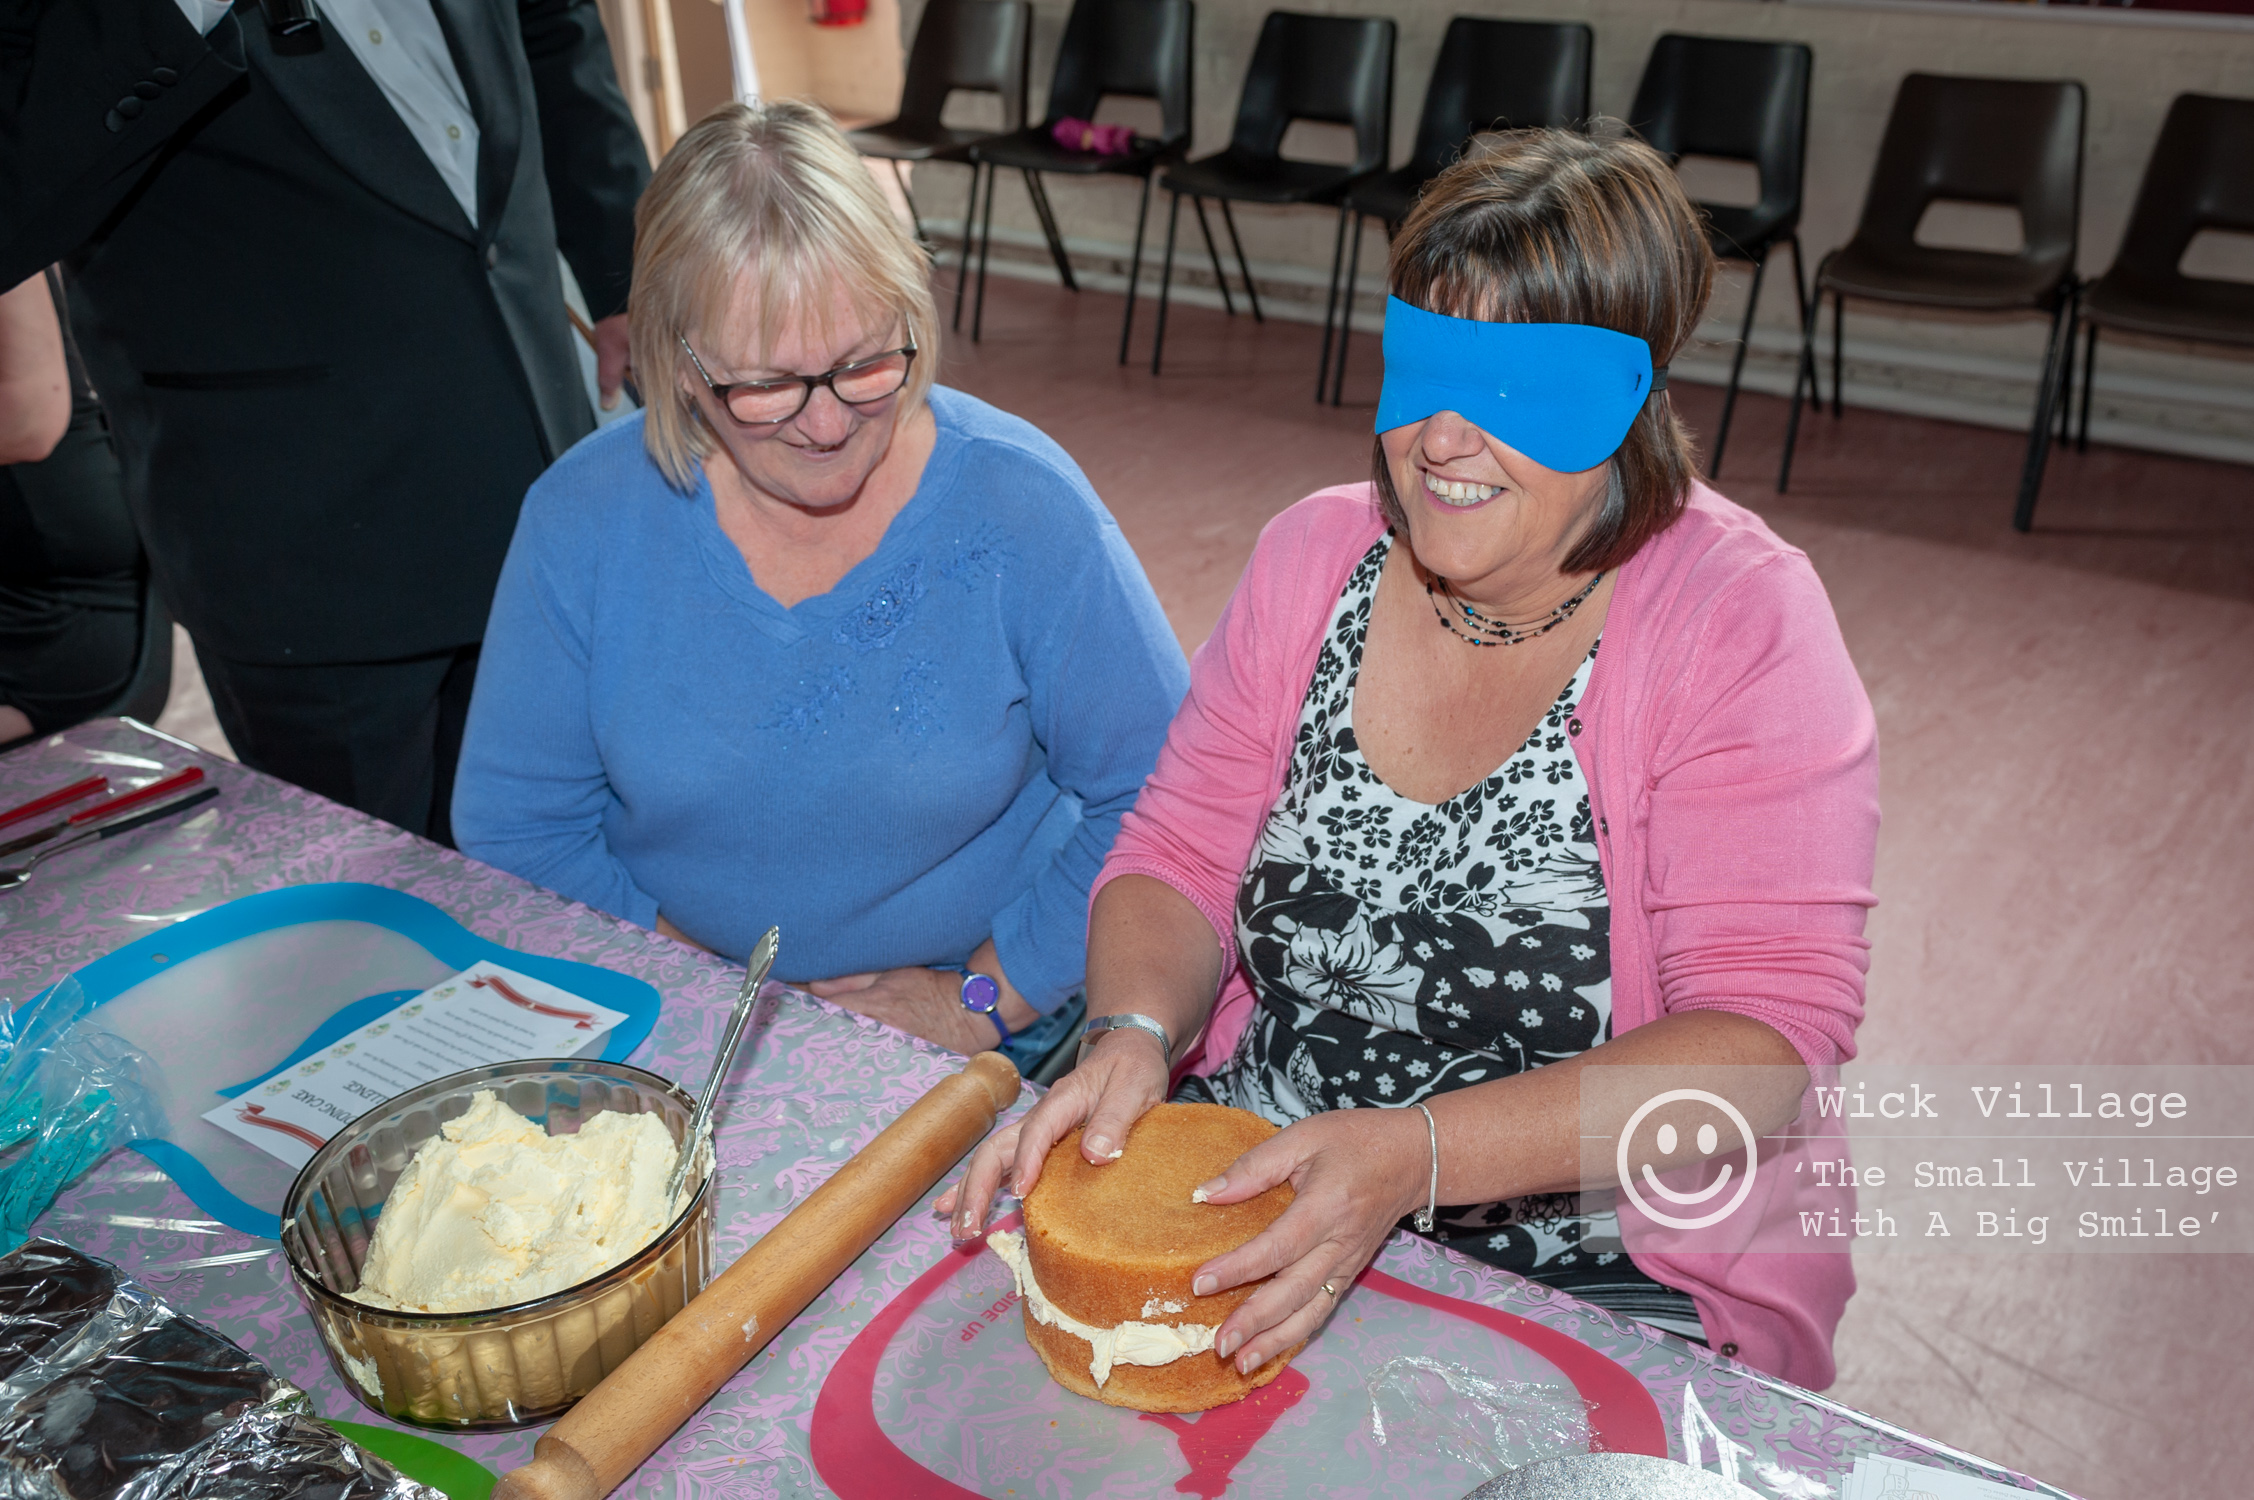 """Wick, Littlehampton, West Sussex, UK. 12th May 2018. Celebrations for the forthcoming royal wedding between Prince Harry and Meghan Markle started earlier in the village of Wick. Members of the local community and businesses held a fun royal wedding inspired challenge called """"The Royal Wedding Challenge Tea For Two"""" which saw local people and couples work together, either blindfolded or tied together, and complete wedding inspired challenges."""